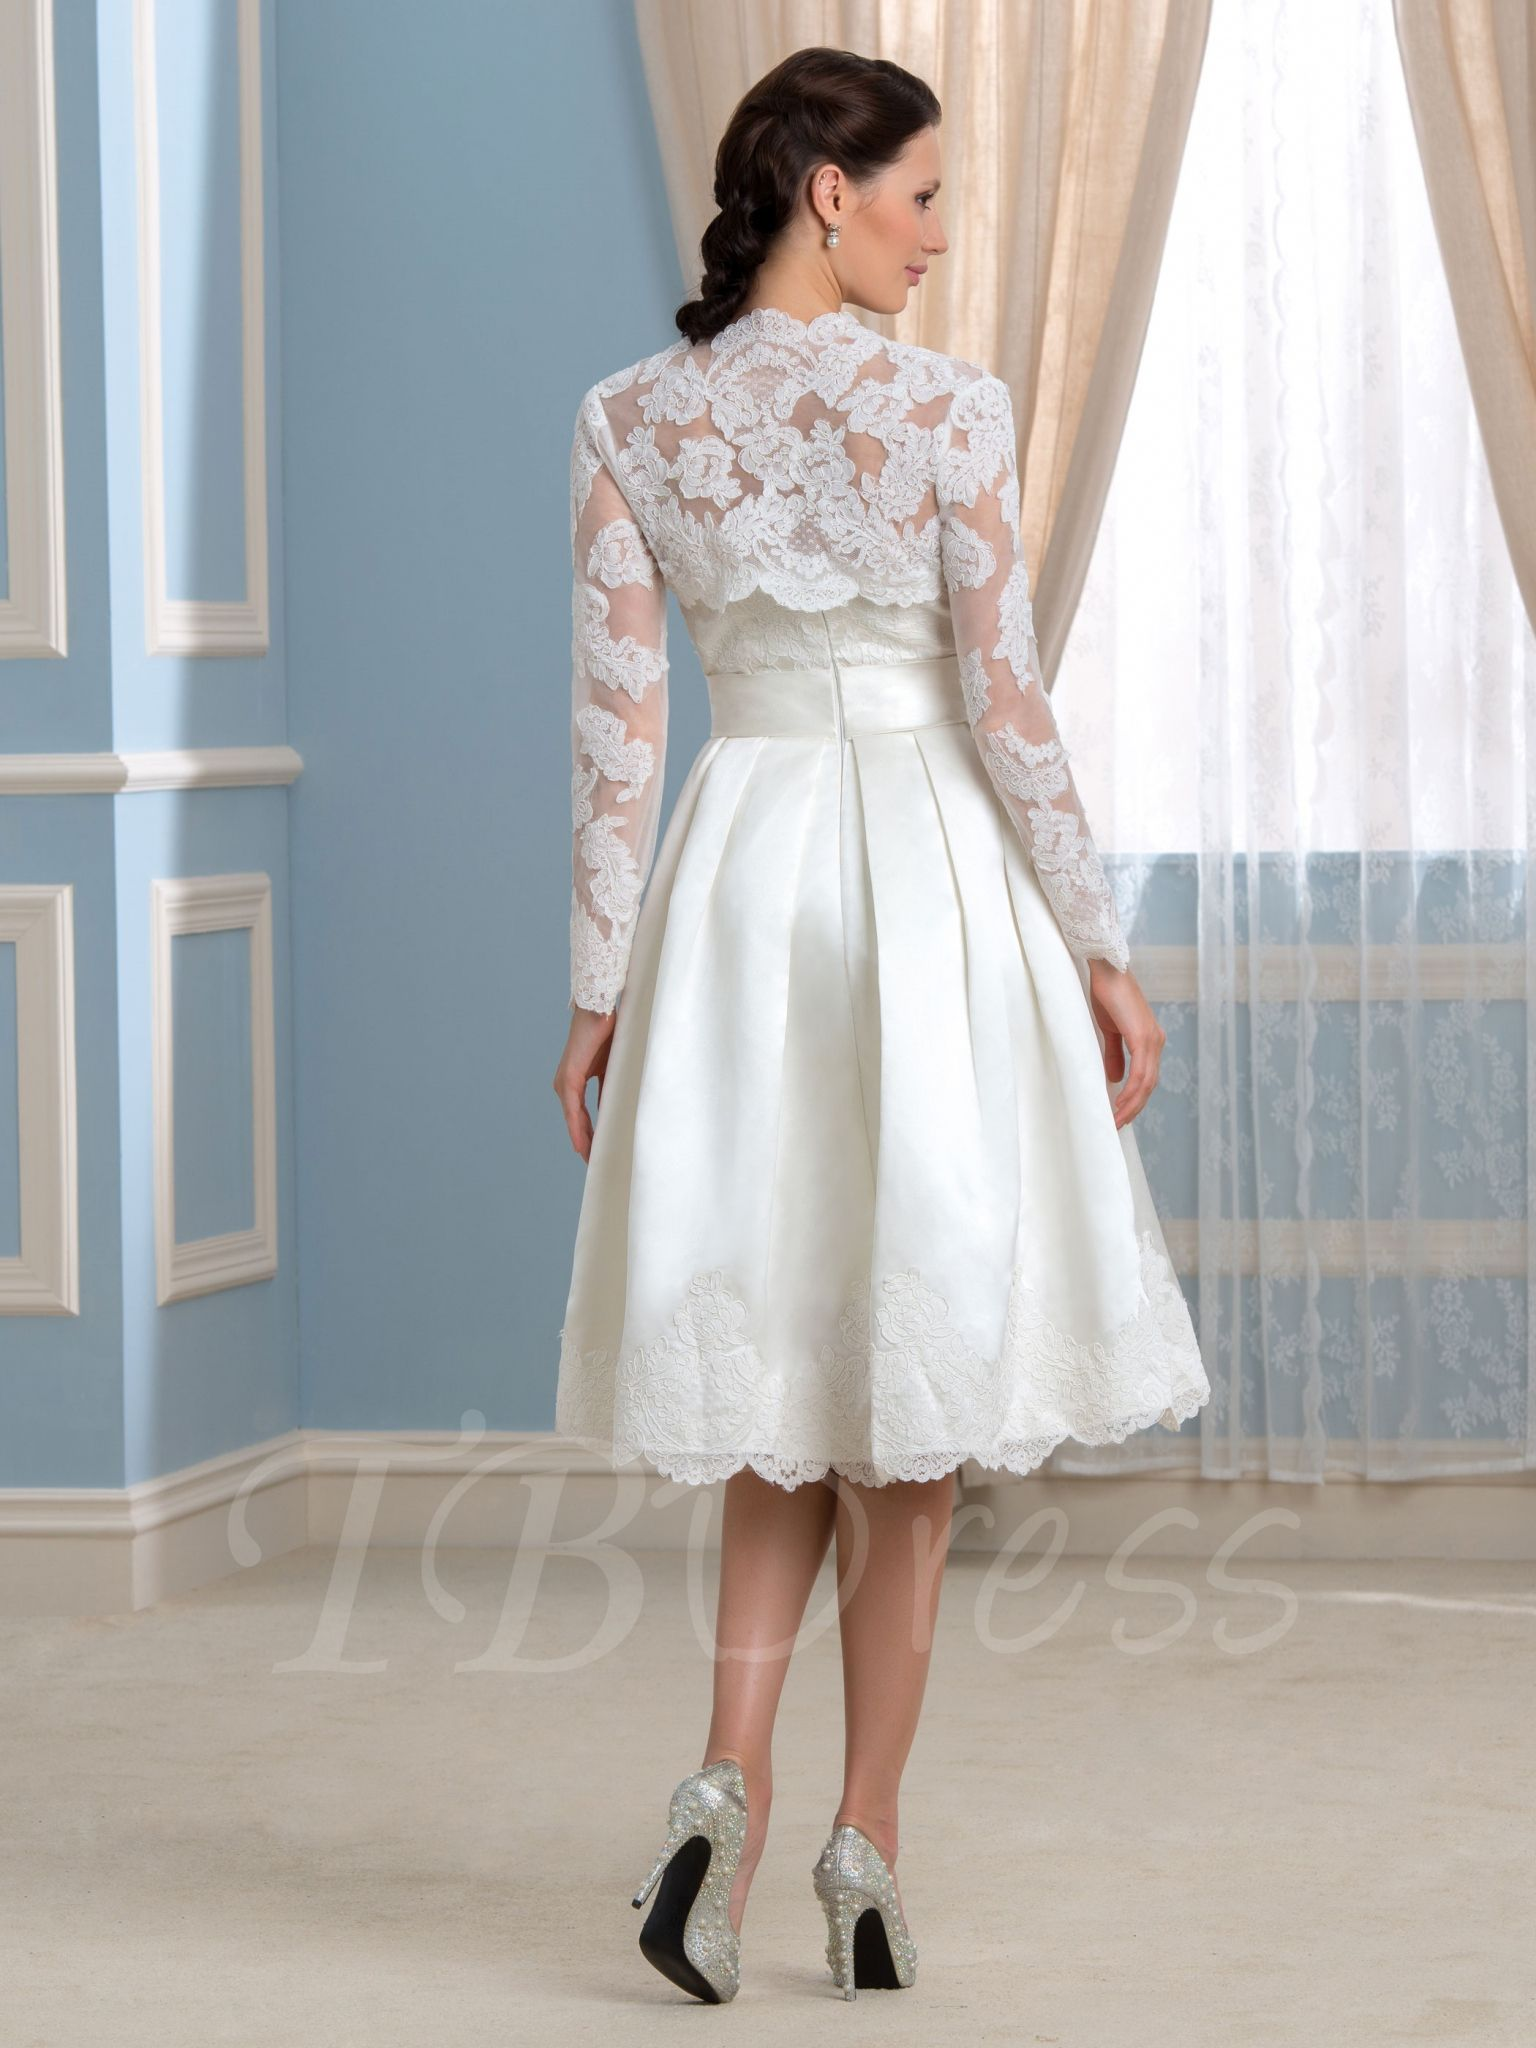 Jacket dresses for weddings cute dresses for a wedding check more